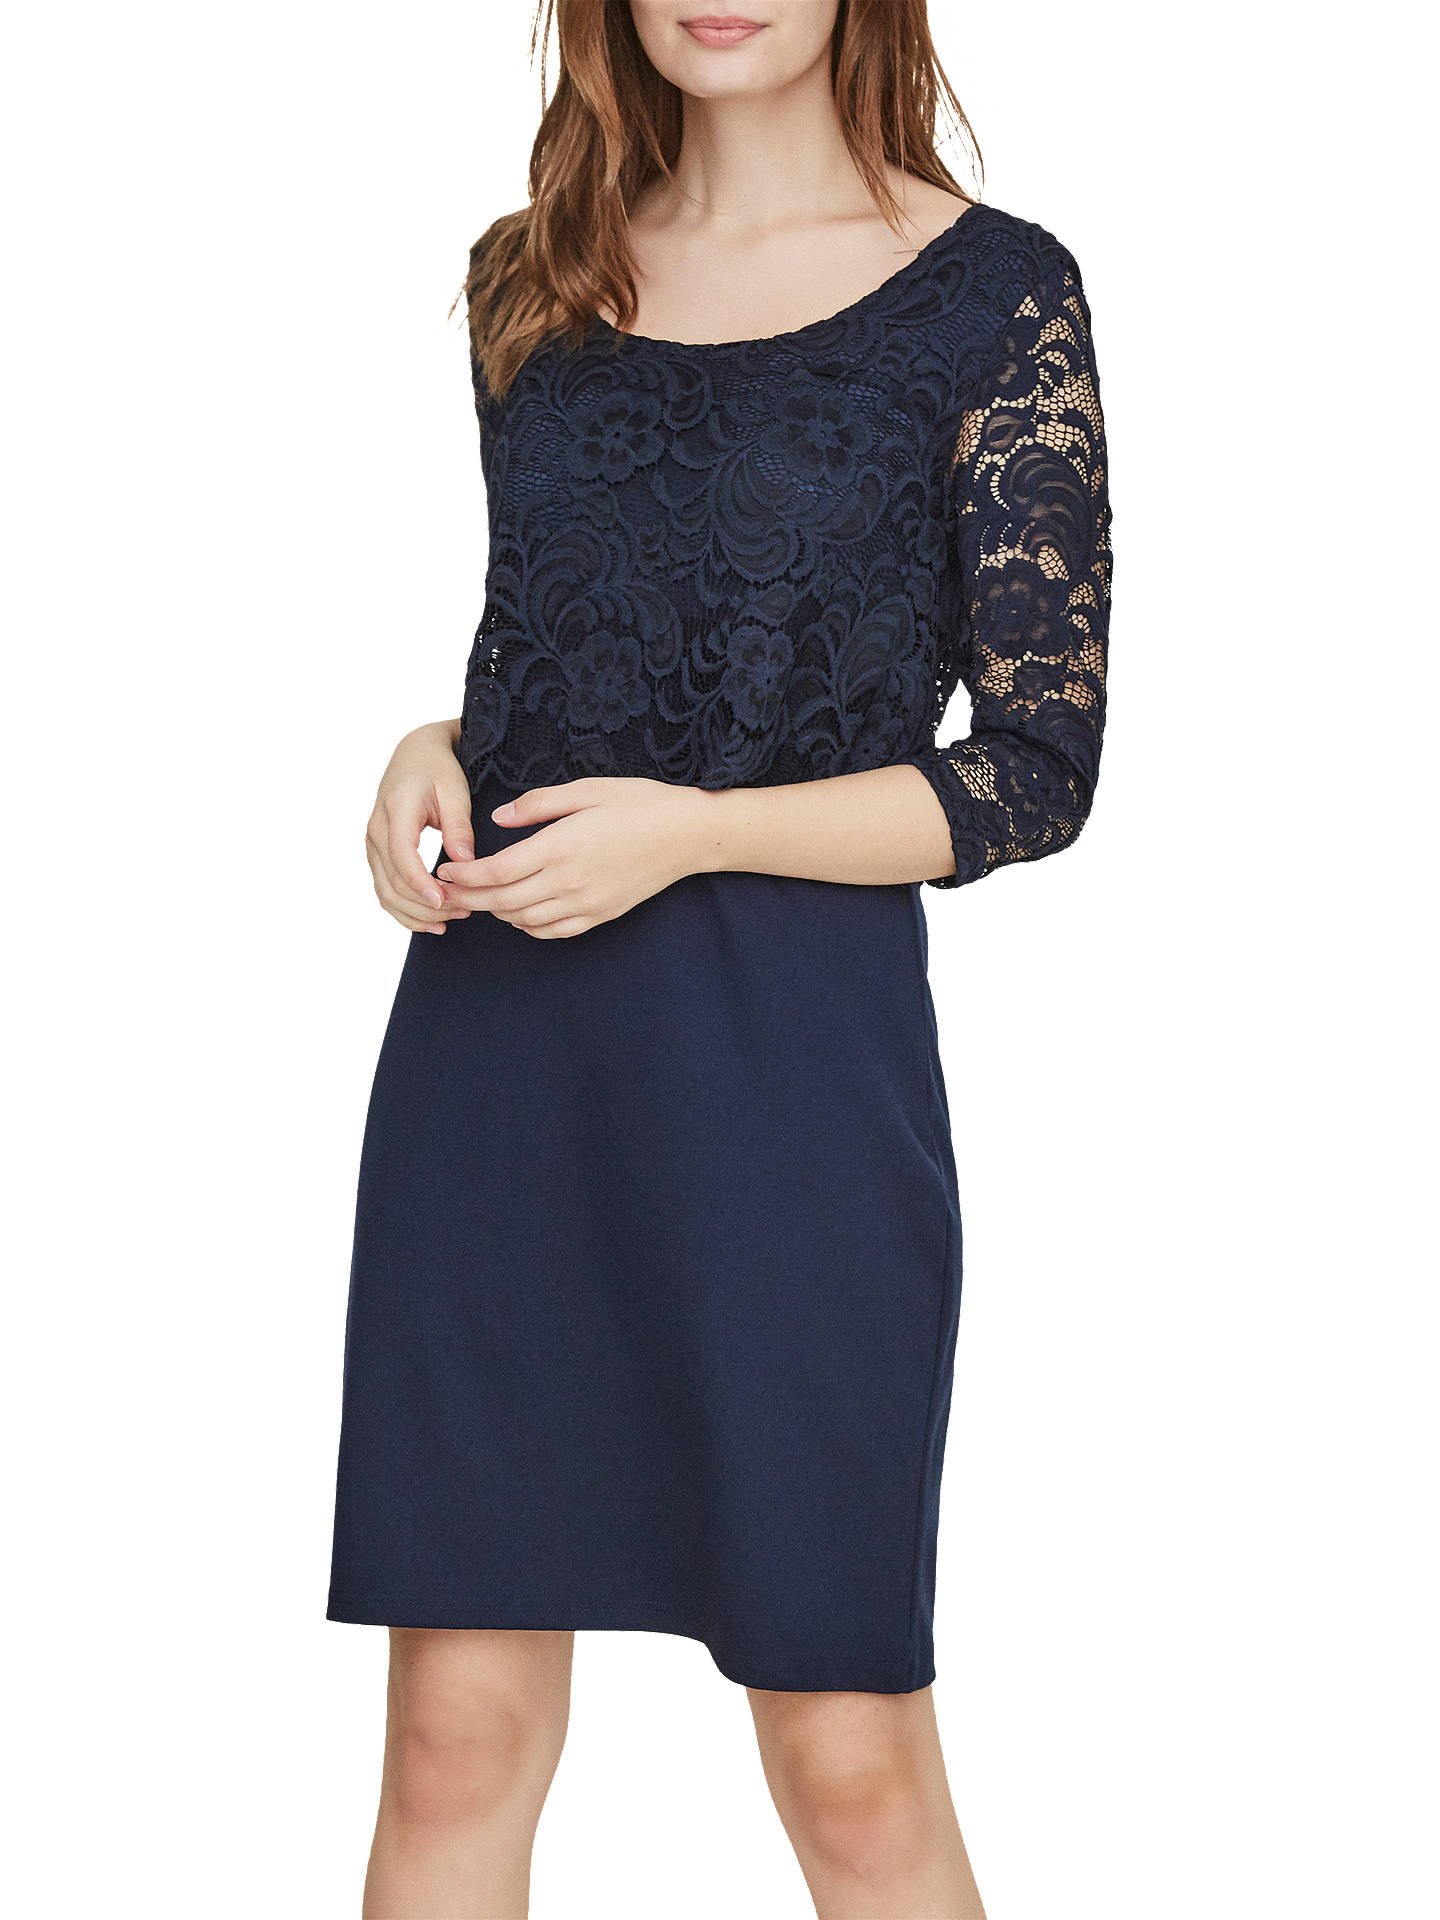 66807143ea4 Buy Mamalicious June Lace Overlay Maternity Nursing Dress, Navy, S Online  at johnlewis.